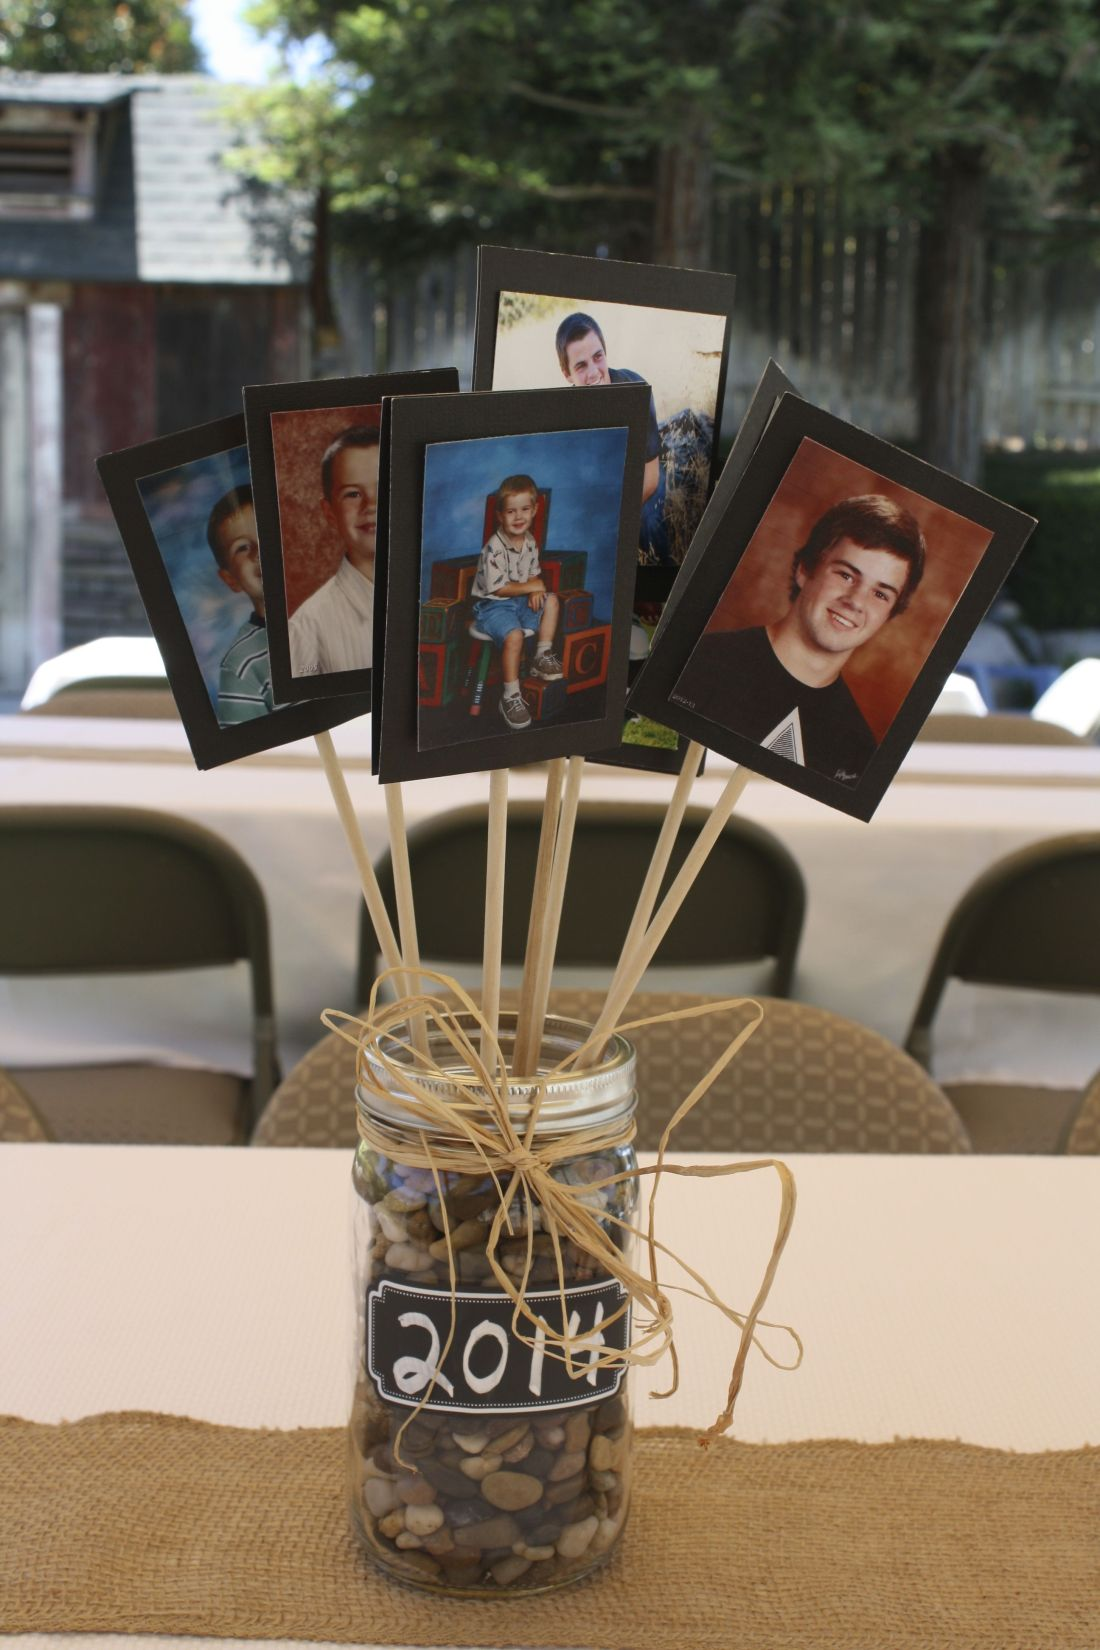 Centerpiece for tables at a graduation party good for